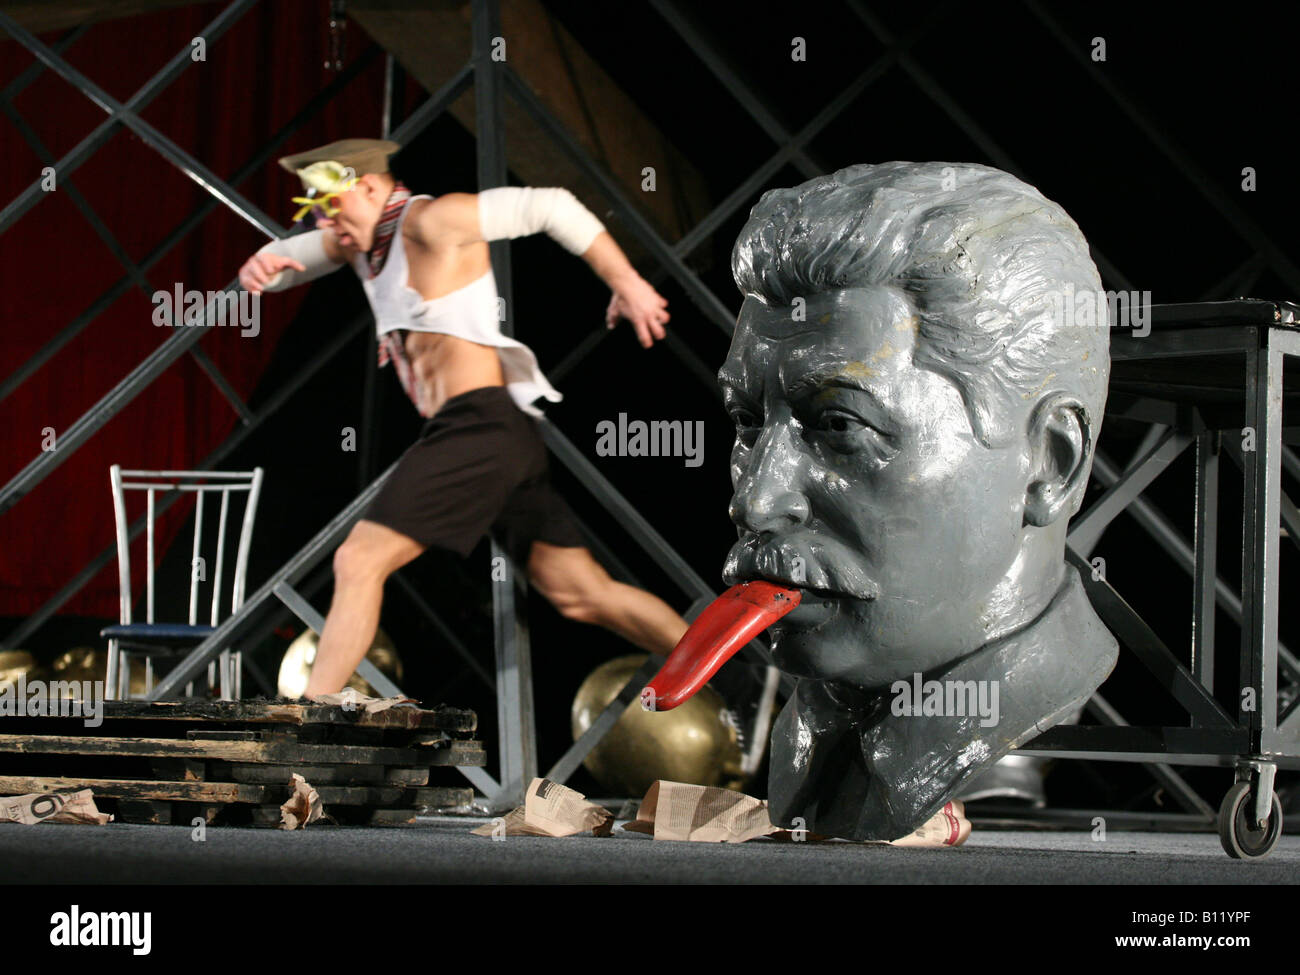 Performance of Roman Viktuk Theatre 'Master and Margarita' by Mikhail Bulgakov. - Stock Image